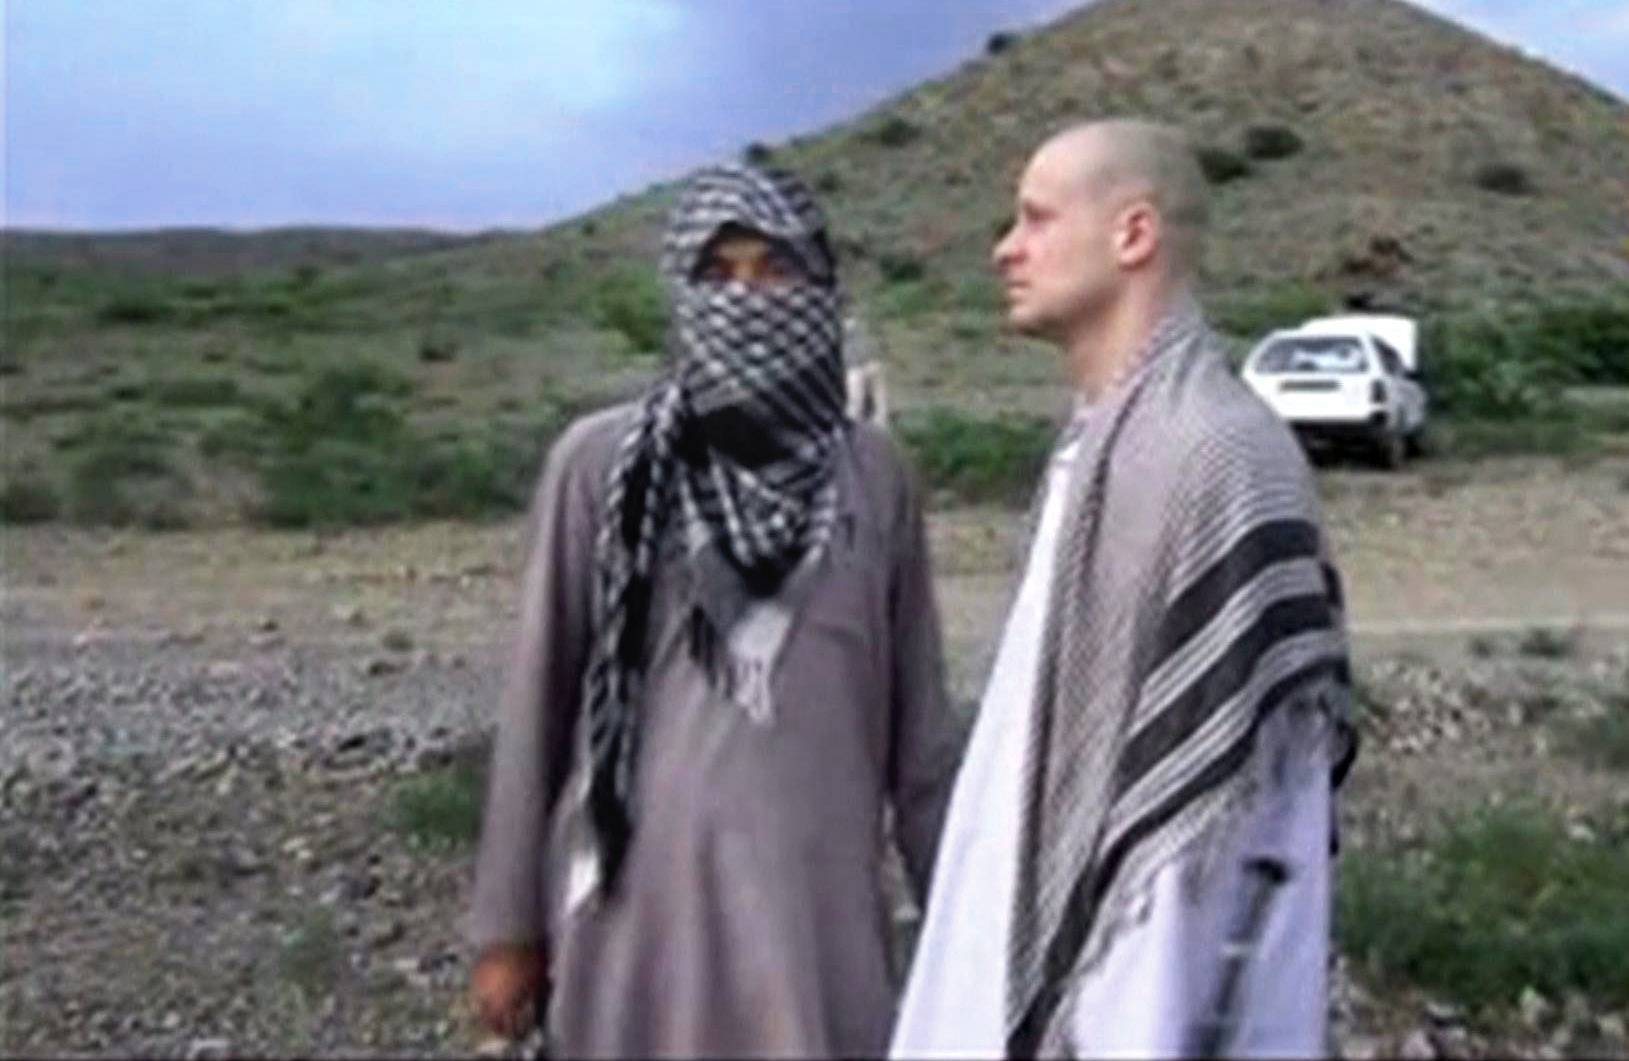 Taliban says captured U.S. soldier was treated well